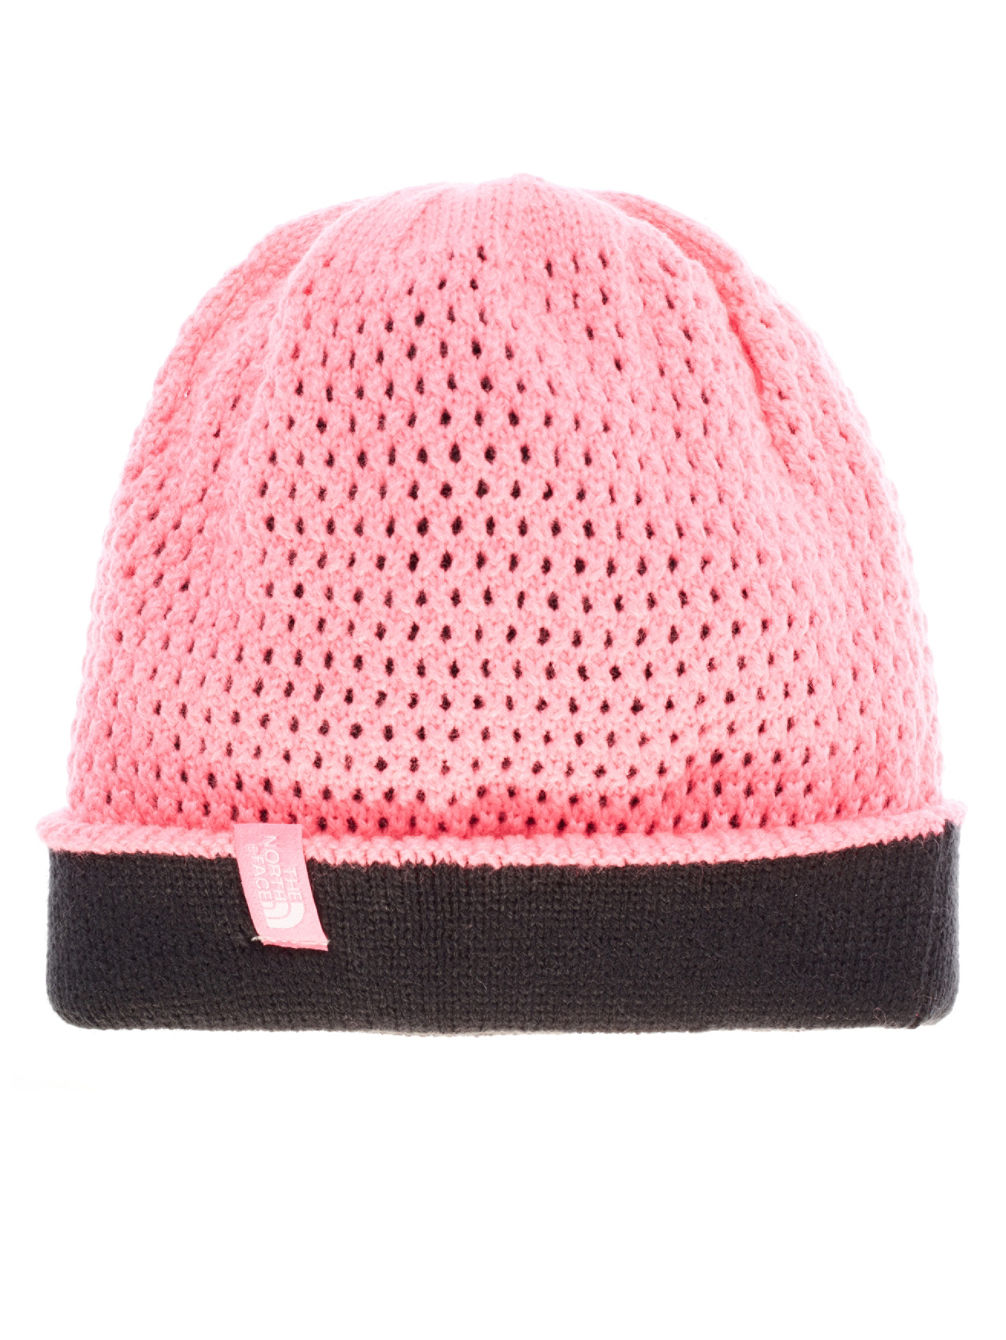 2d854efa656 Buy THE NORTH FACE Shinsky Beanie Youth online at Blue Tomato